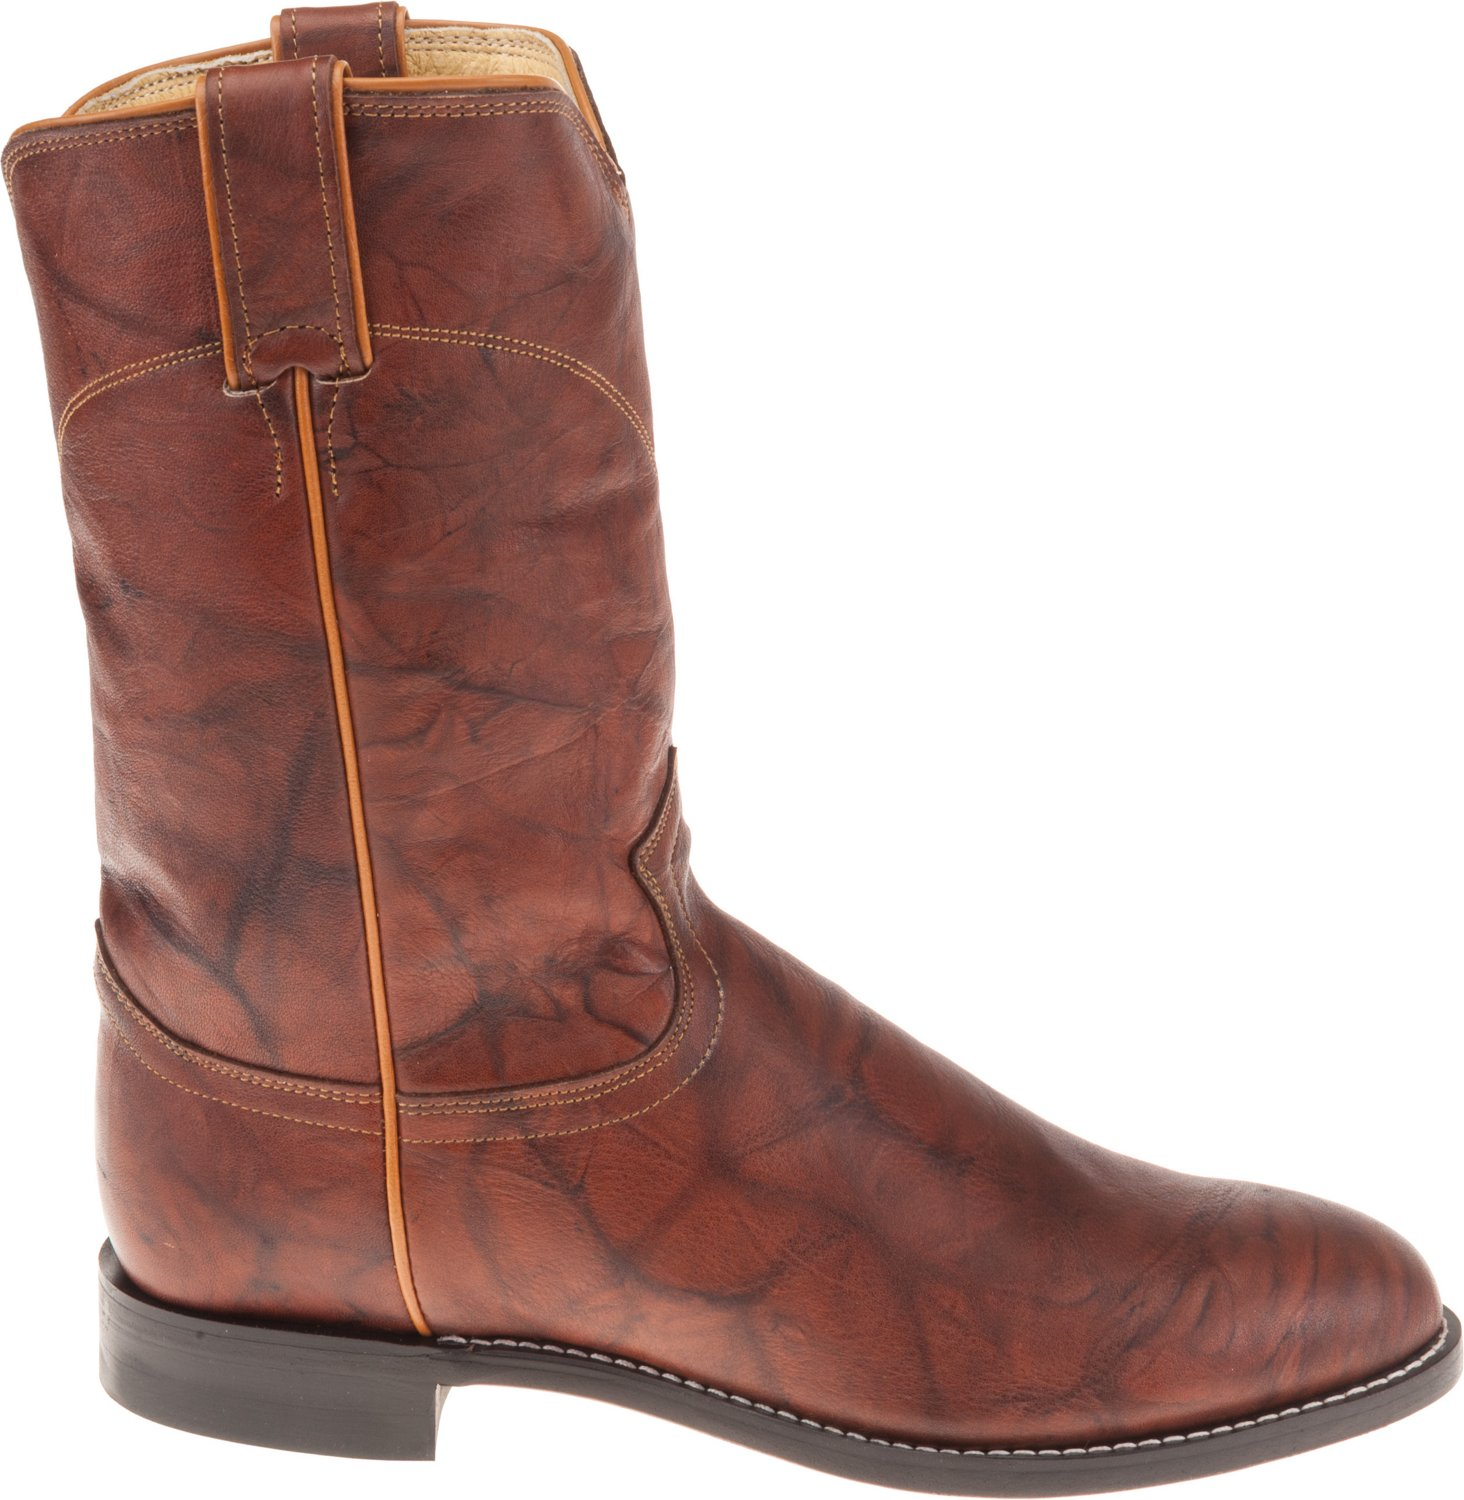 a0094807a Display product reviews for Justin Men s Ropers Marbled Deerlite Western  Boots